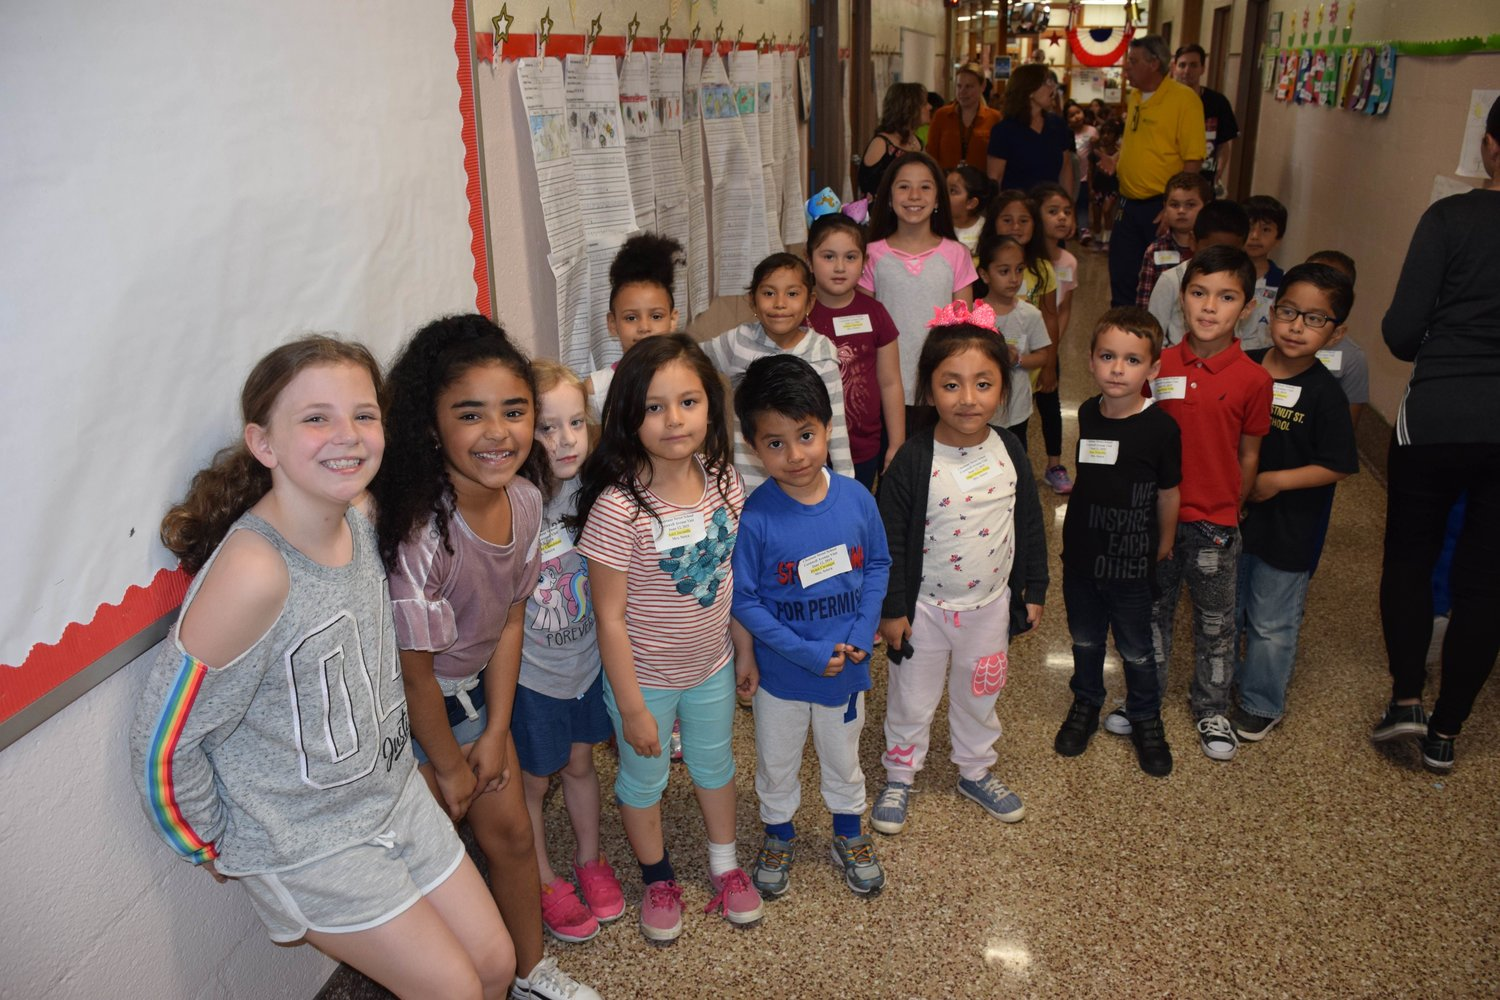 Third graders at Cornwell led the tours for kindergarten students from Chestnut Street